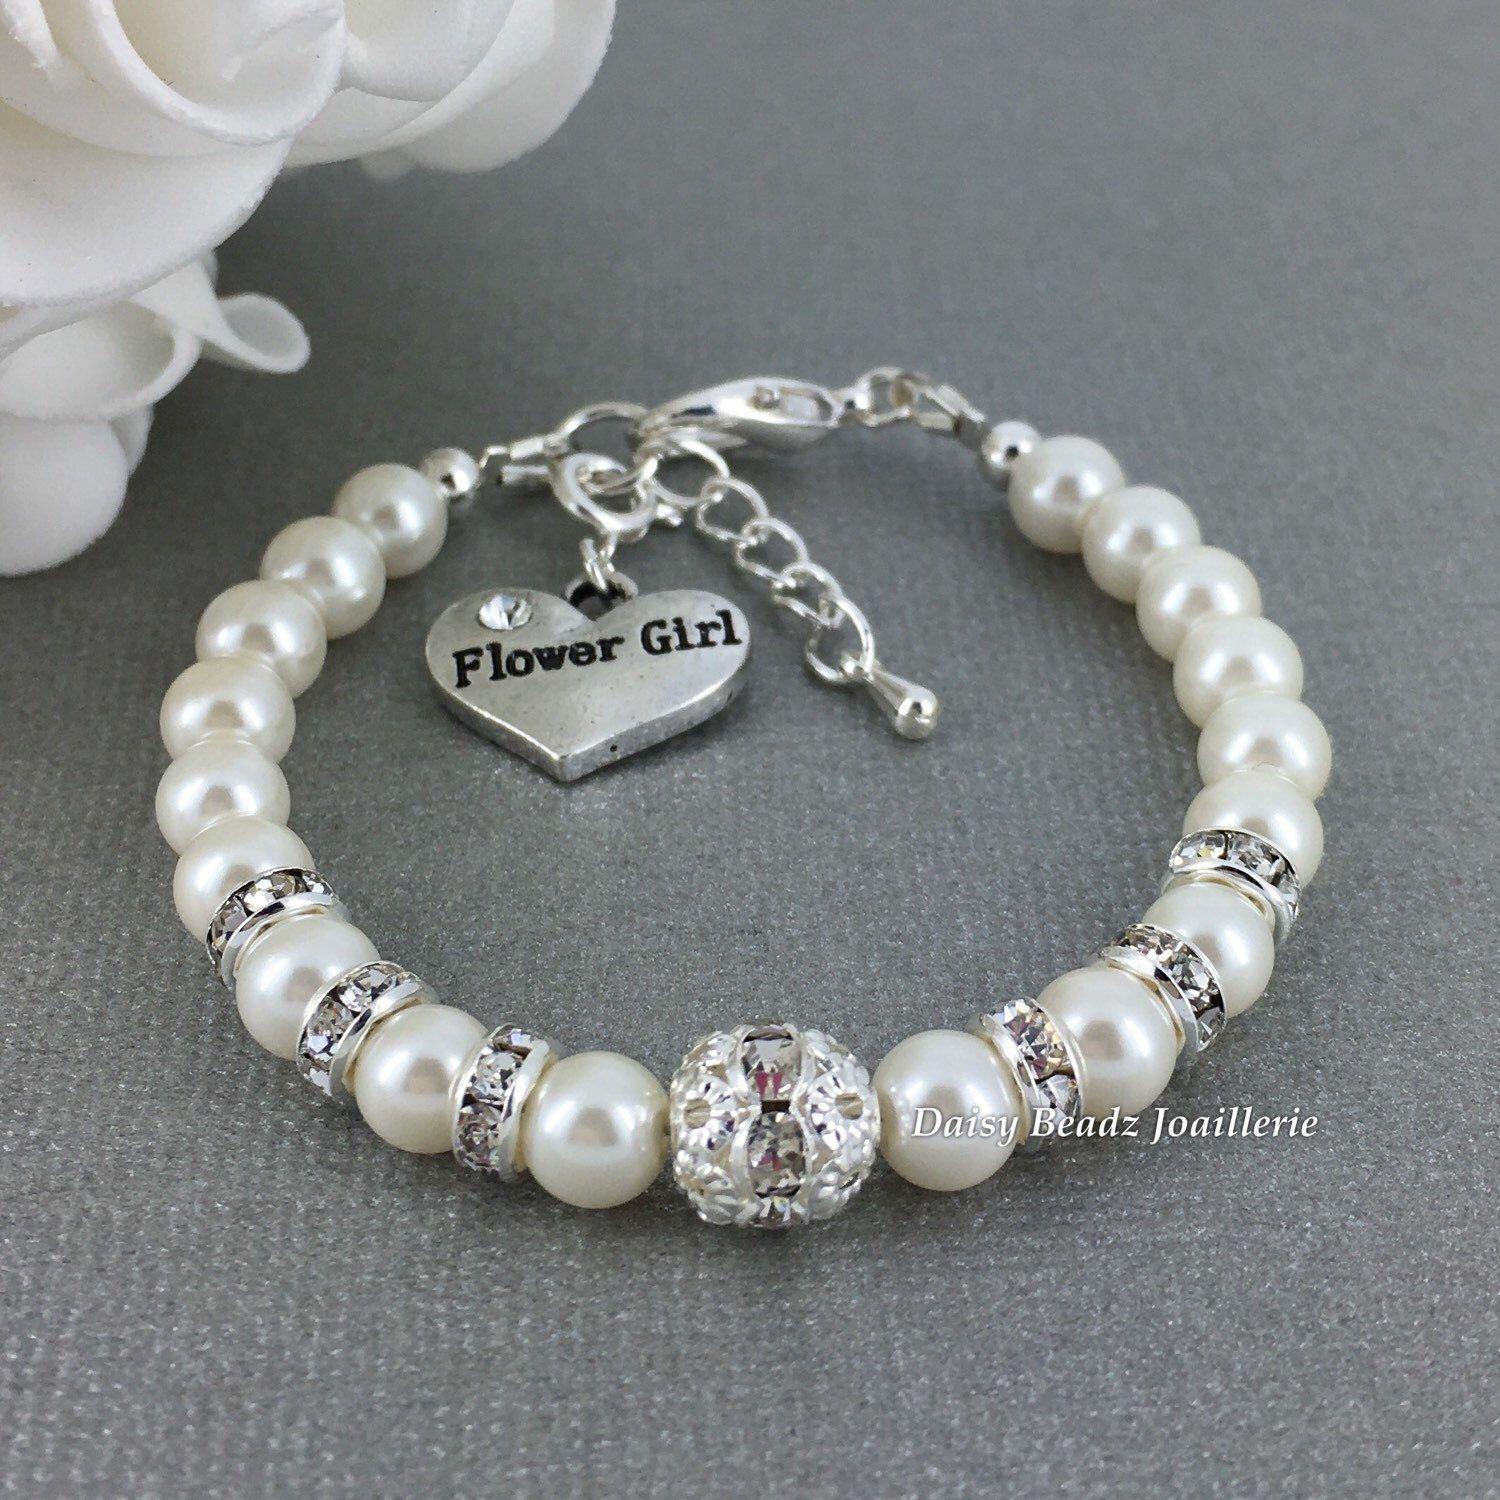 Flower girl bracelet flower girl jewelry flower girls gift flower